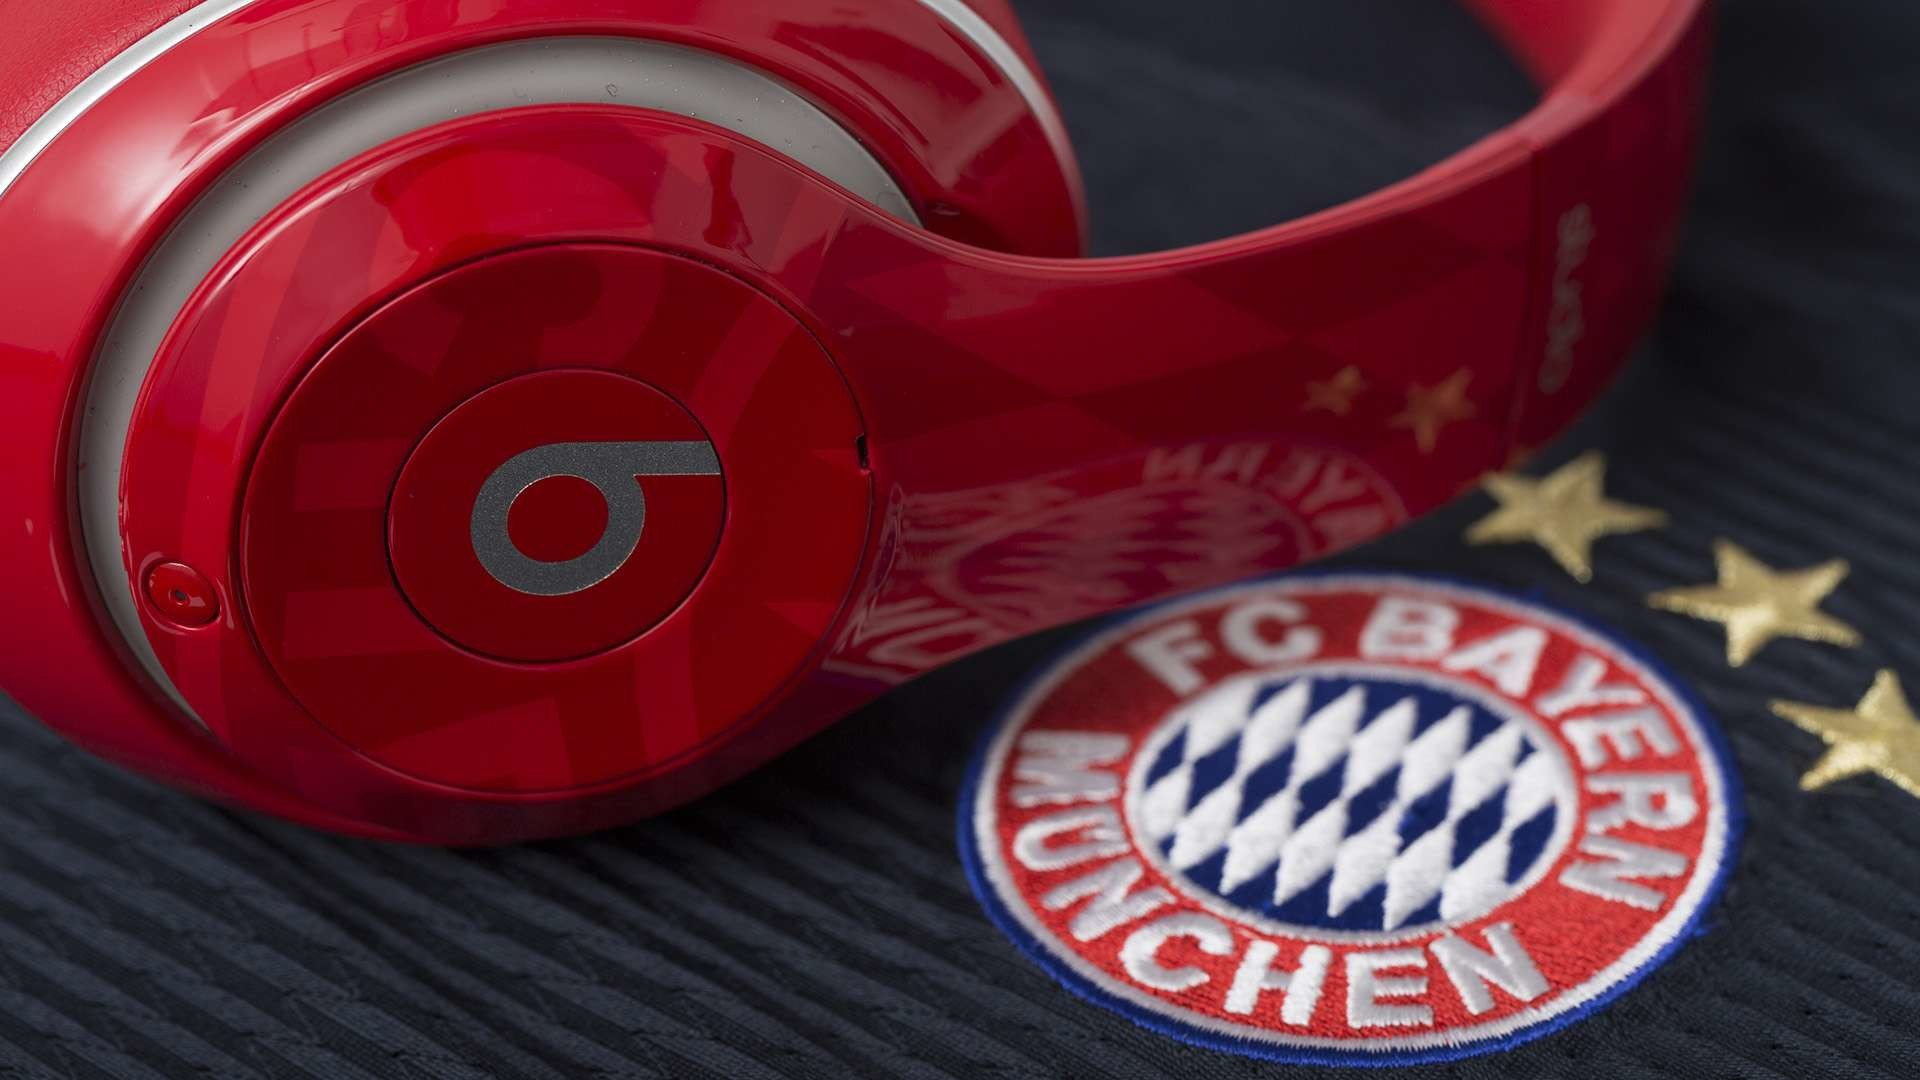 FC Bayern Munich teams up with Beats by Dre